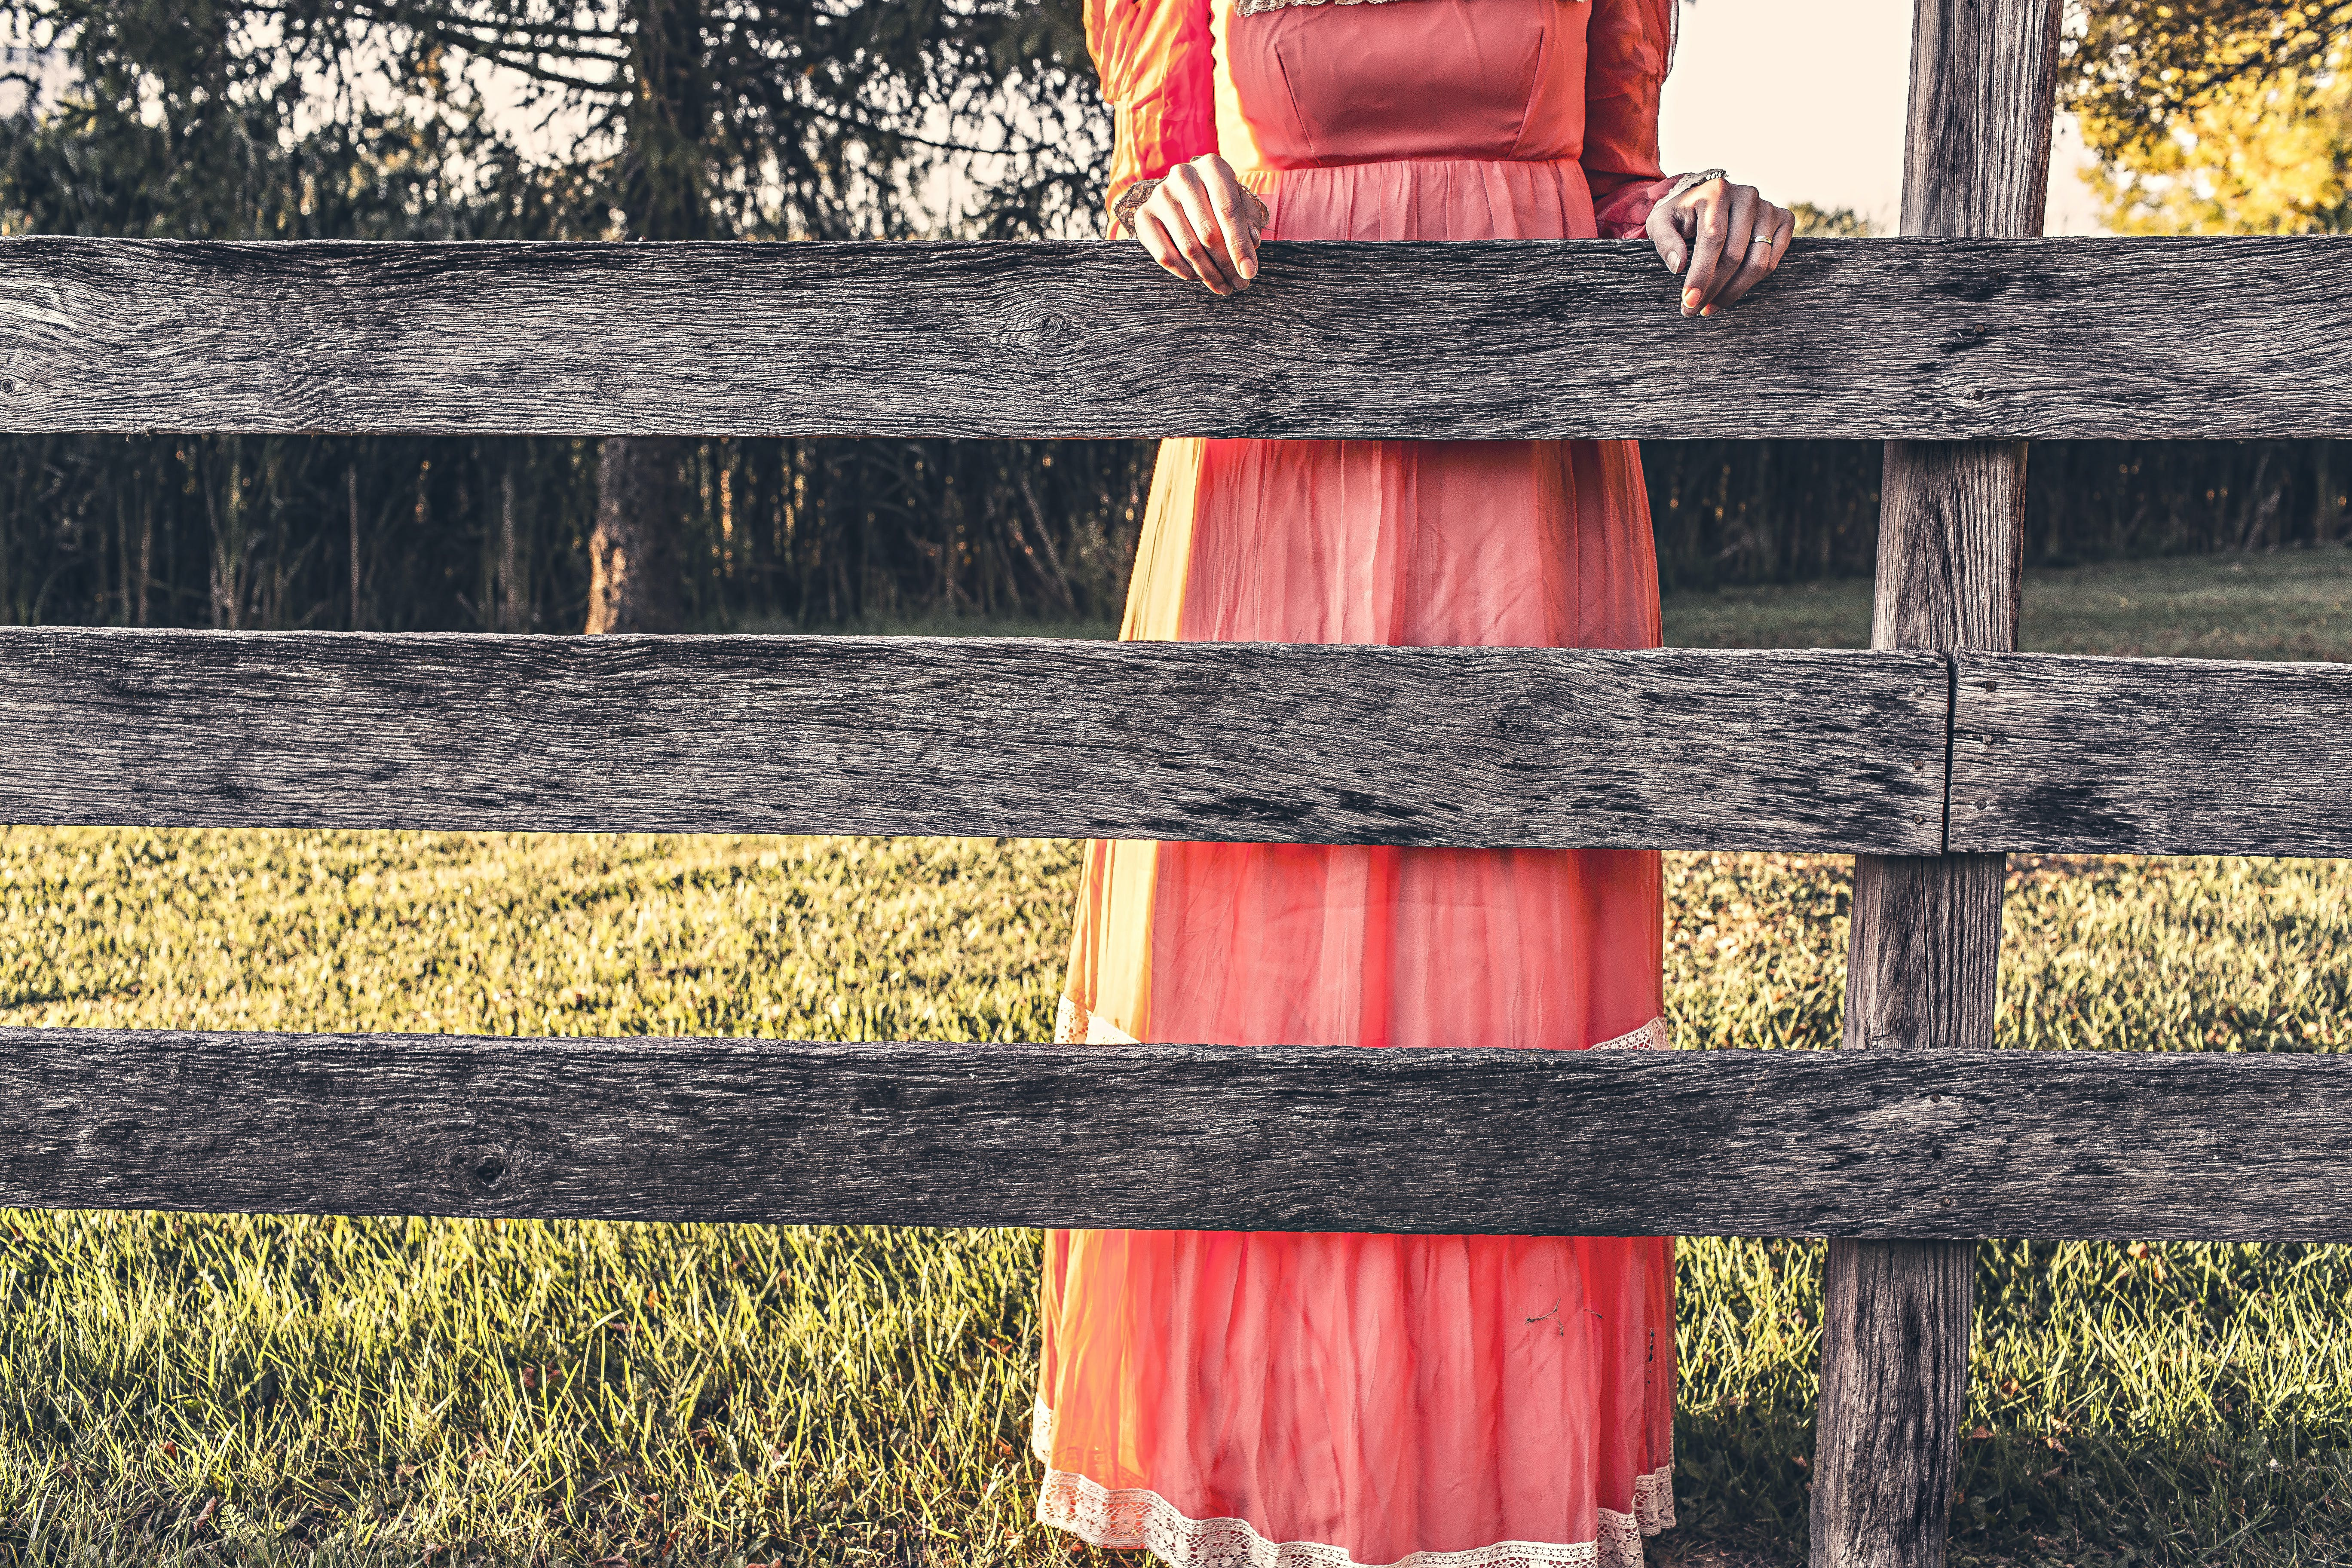 Woman Wearing Red Dress Holding Gray Wooden Fence